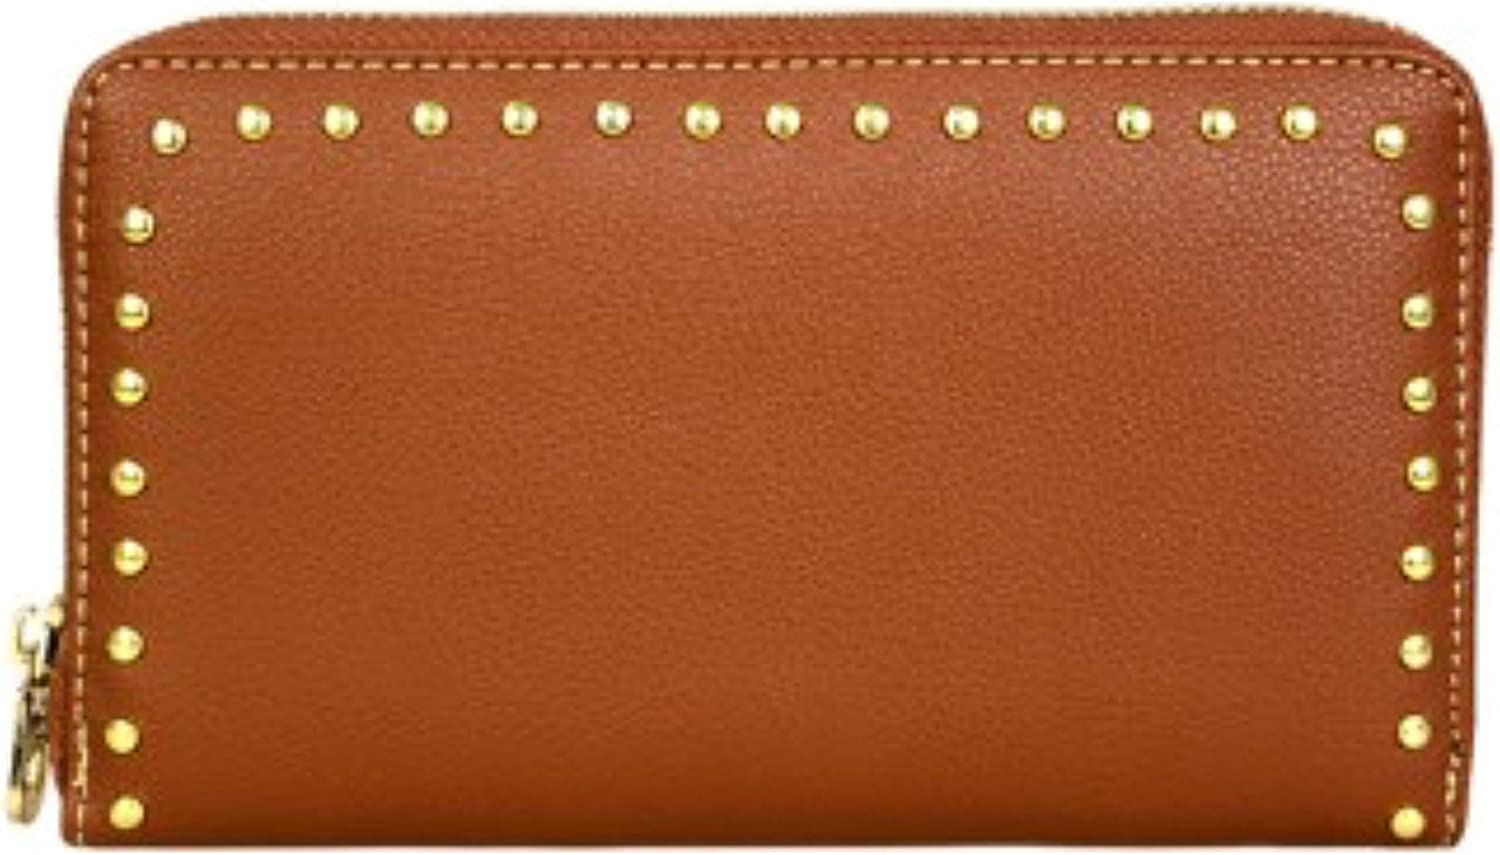 Montana West Studs Collection Phone Charging Clutch Wristlet. Wallet